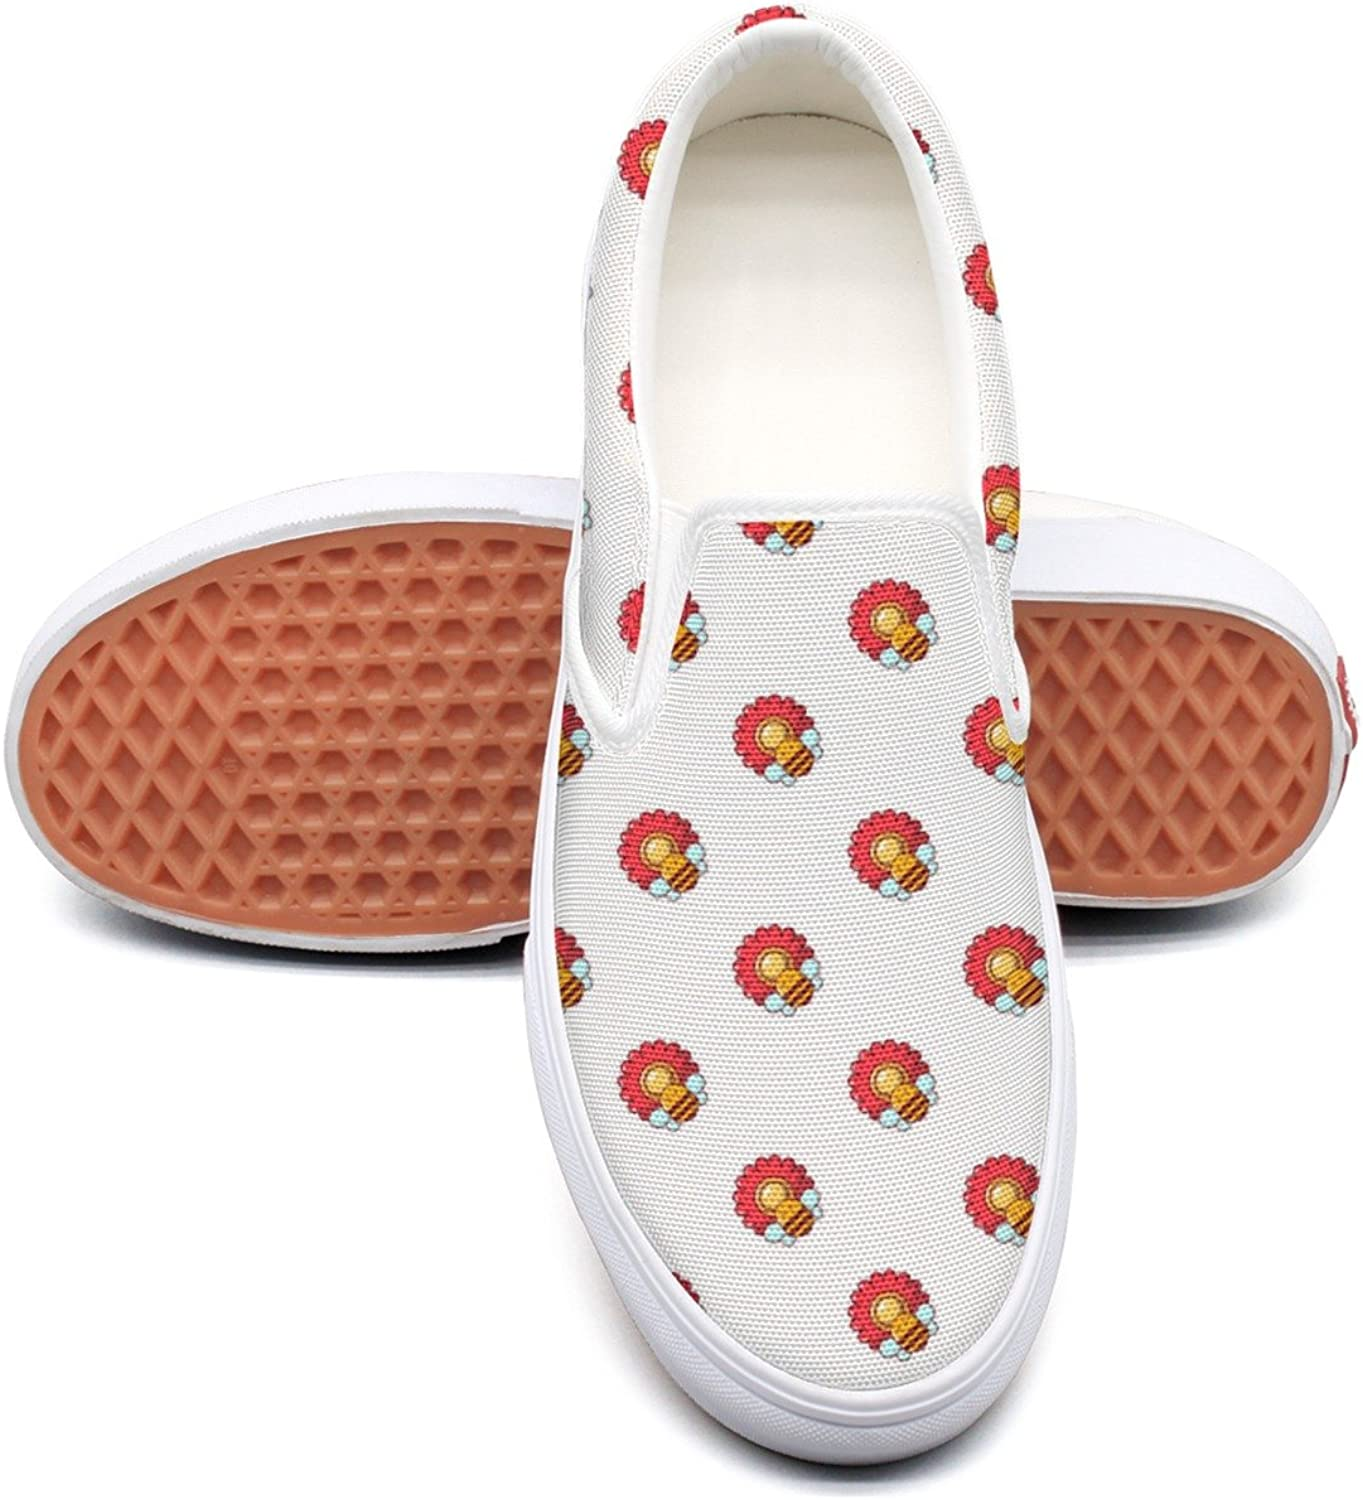 Hjkggd fgfds Casual Bee On A Flower Young Women Canvas shoes